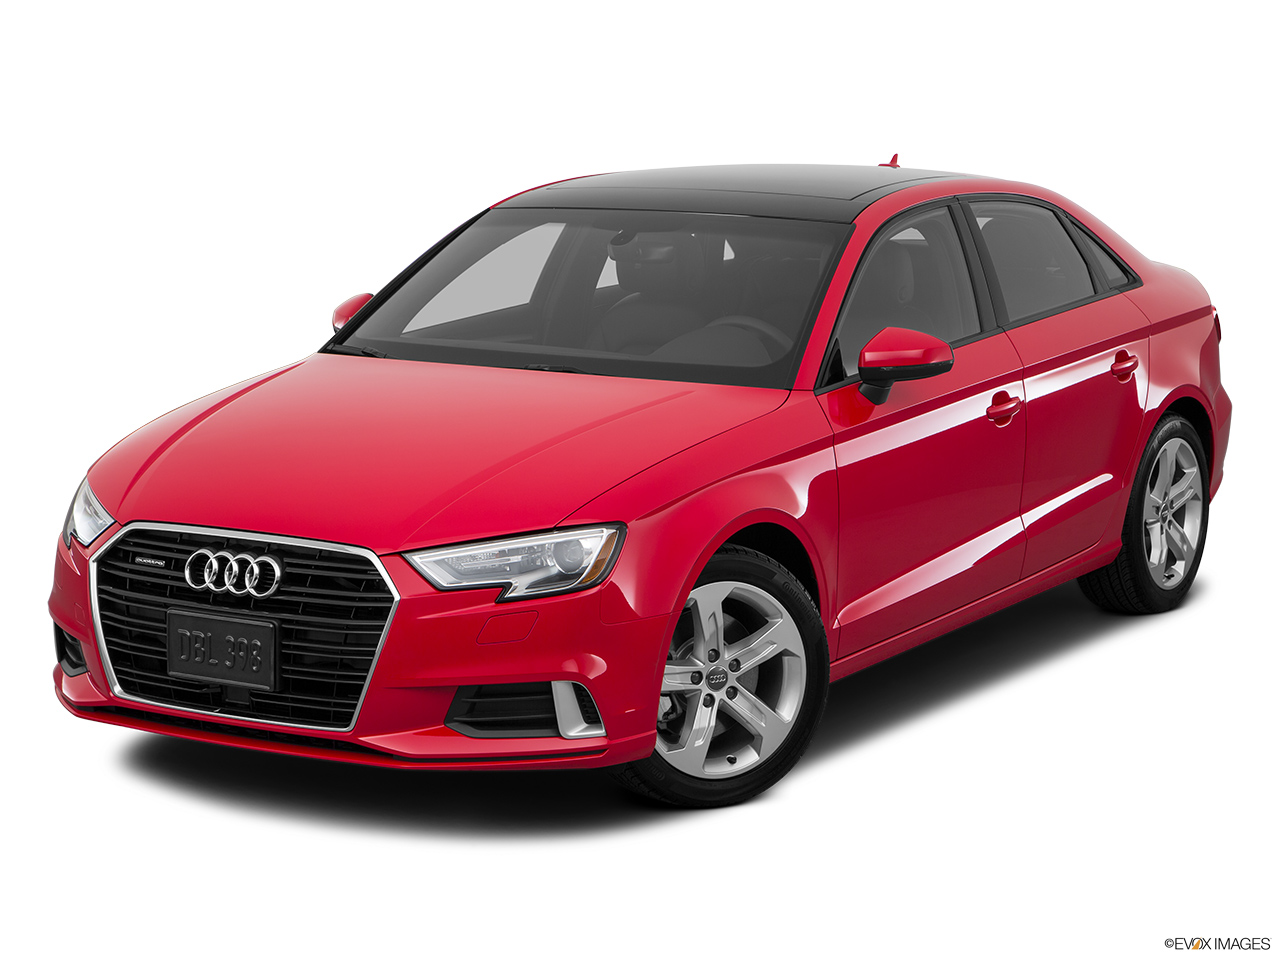 audi a3 sedan price images galleries with a bite. Black Bedroom Furniture Sets. Home Design Ideas